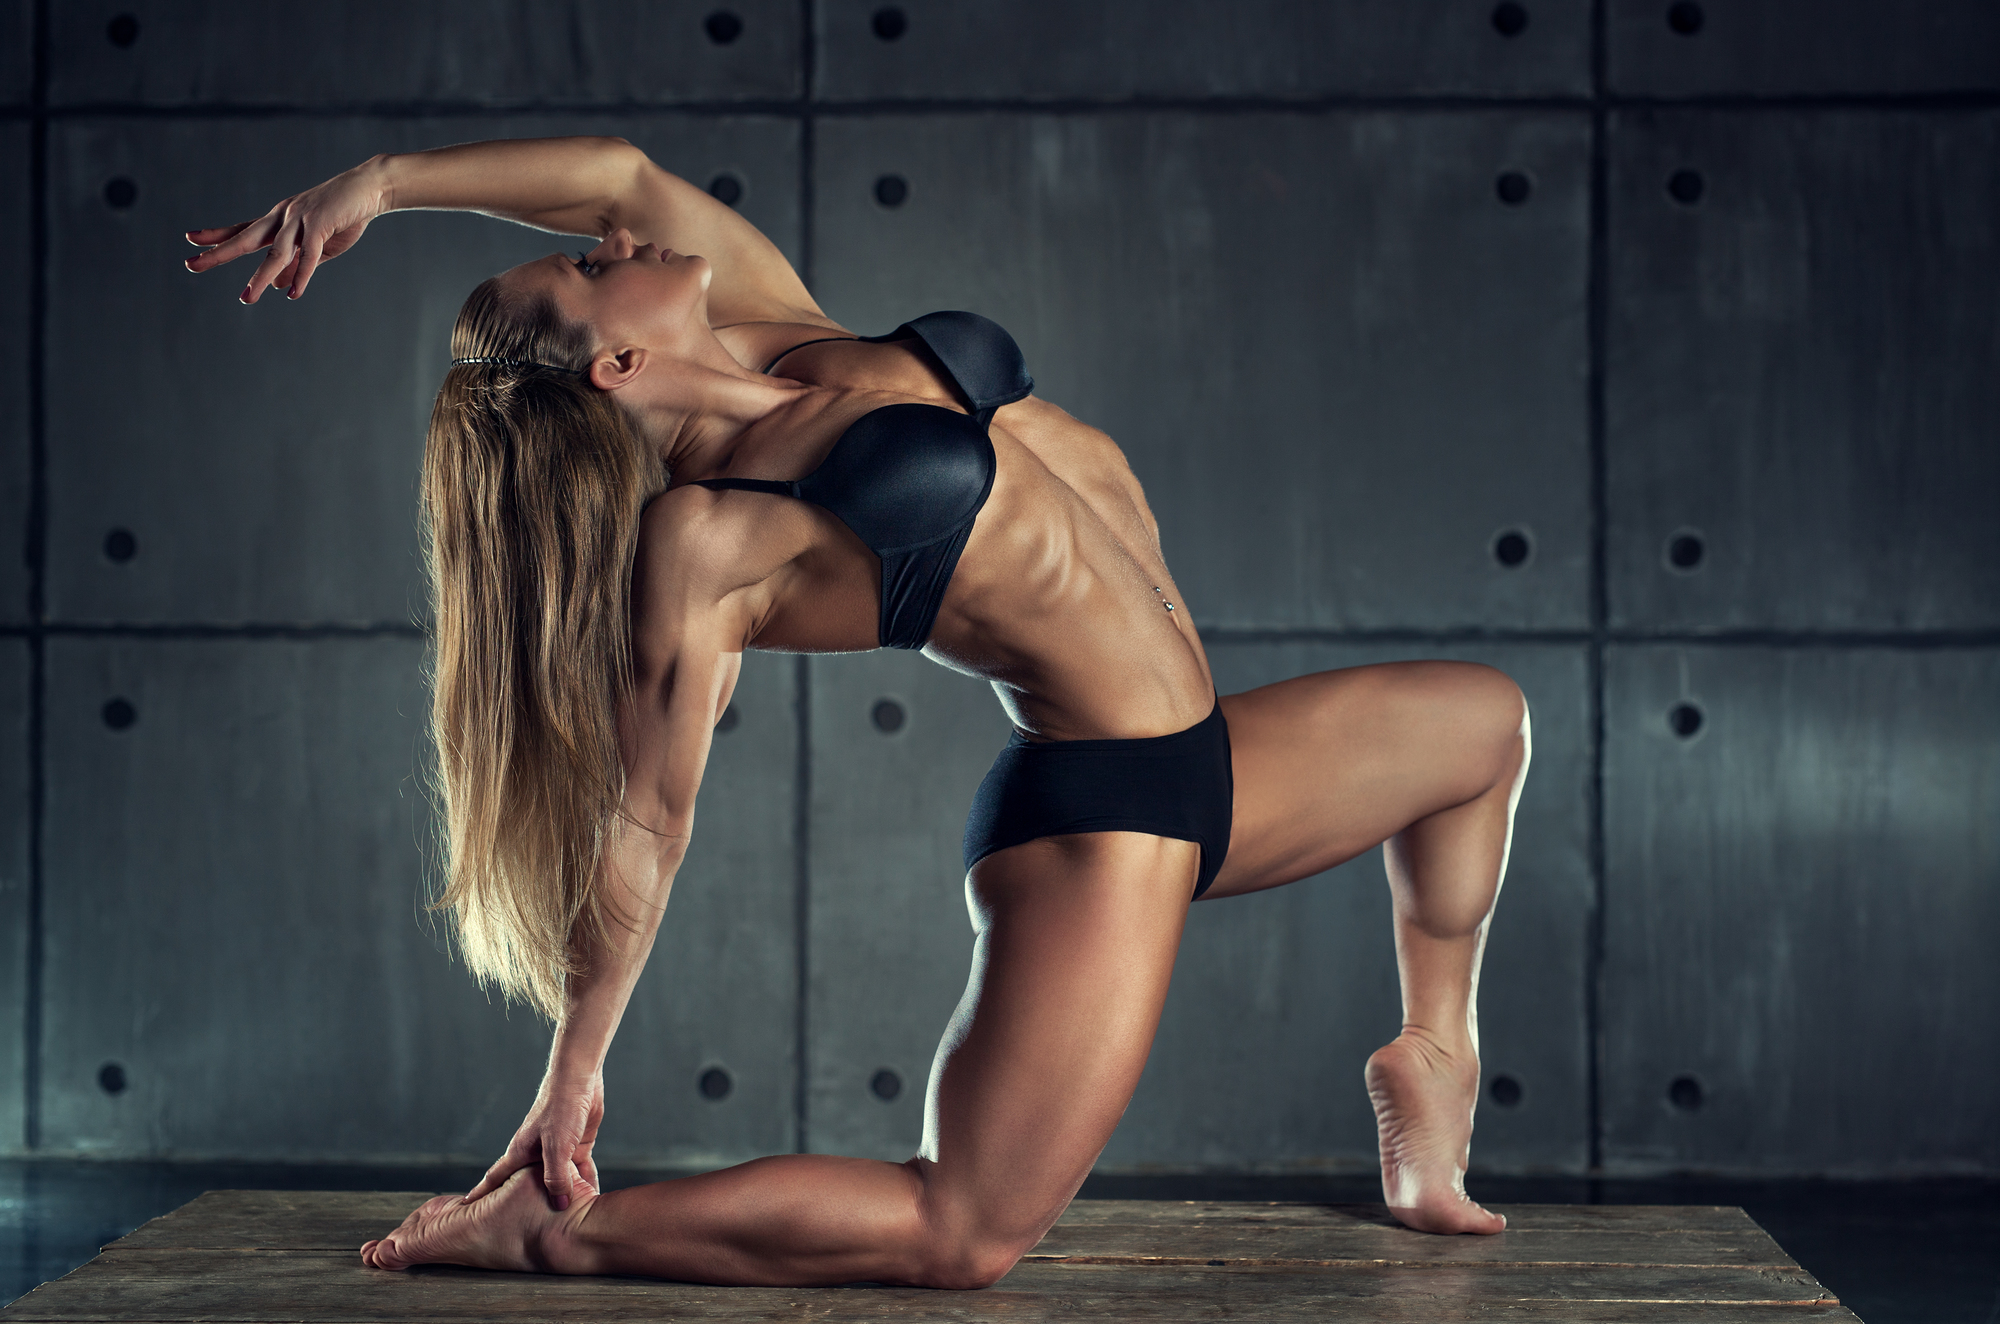 Strong woman bodybuilder on wall background.